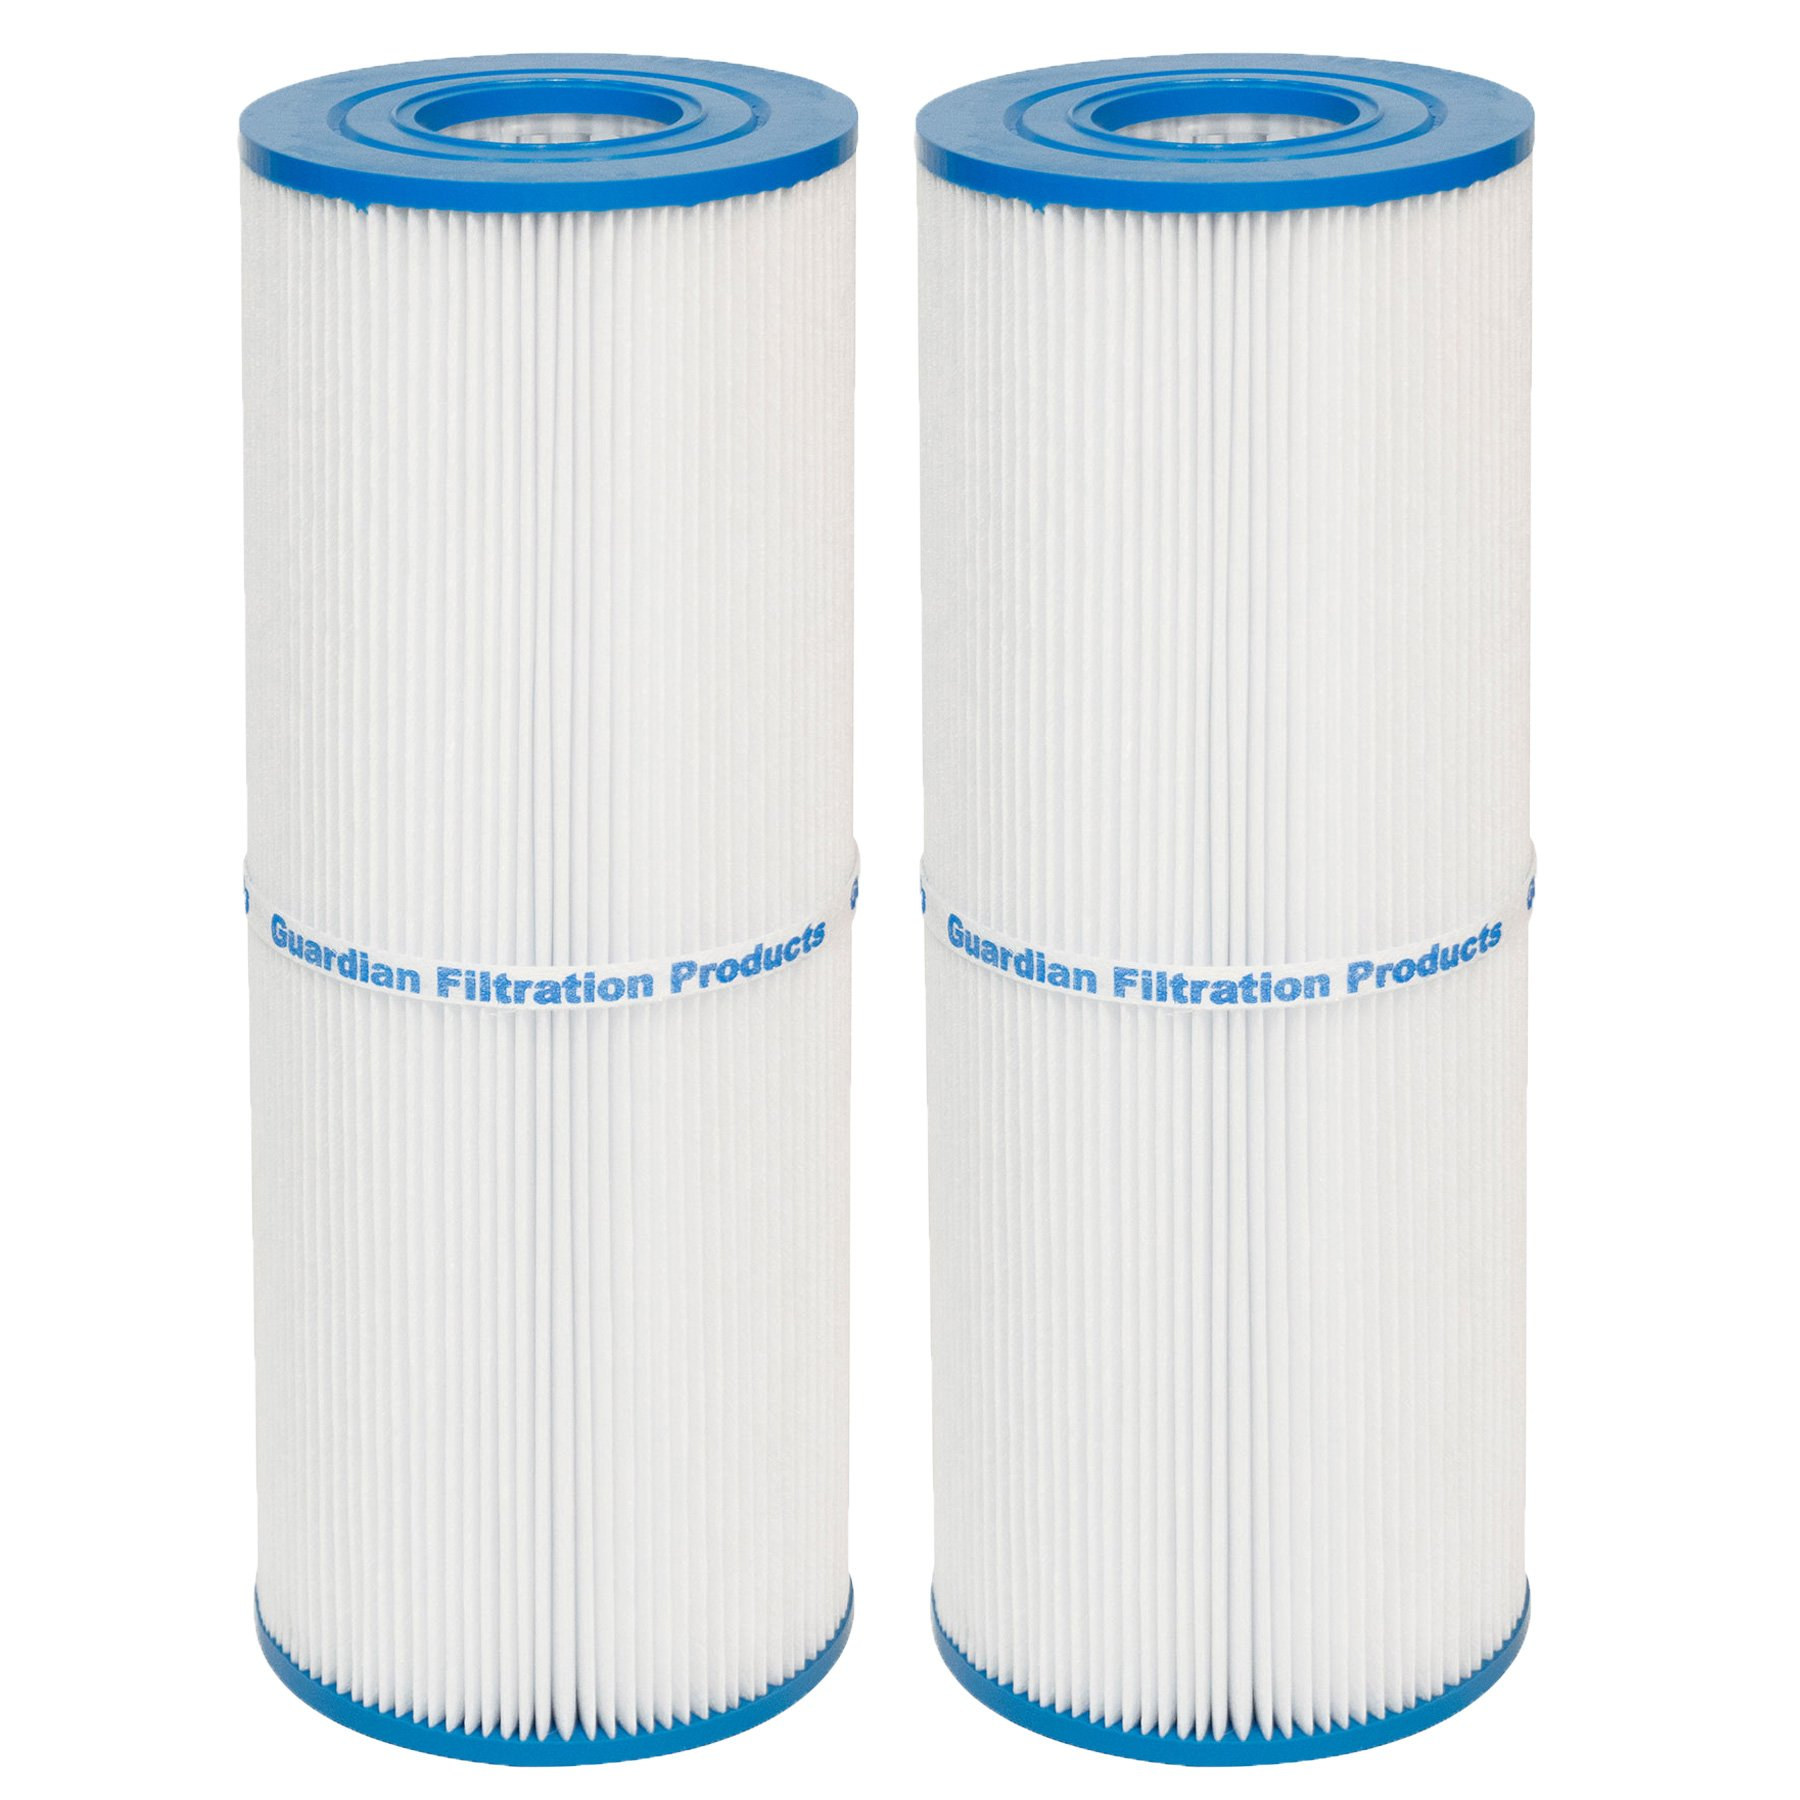 Are Guardian Filtration Products Spa Filters Reviews